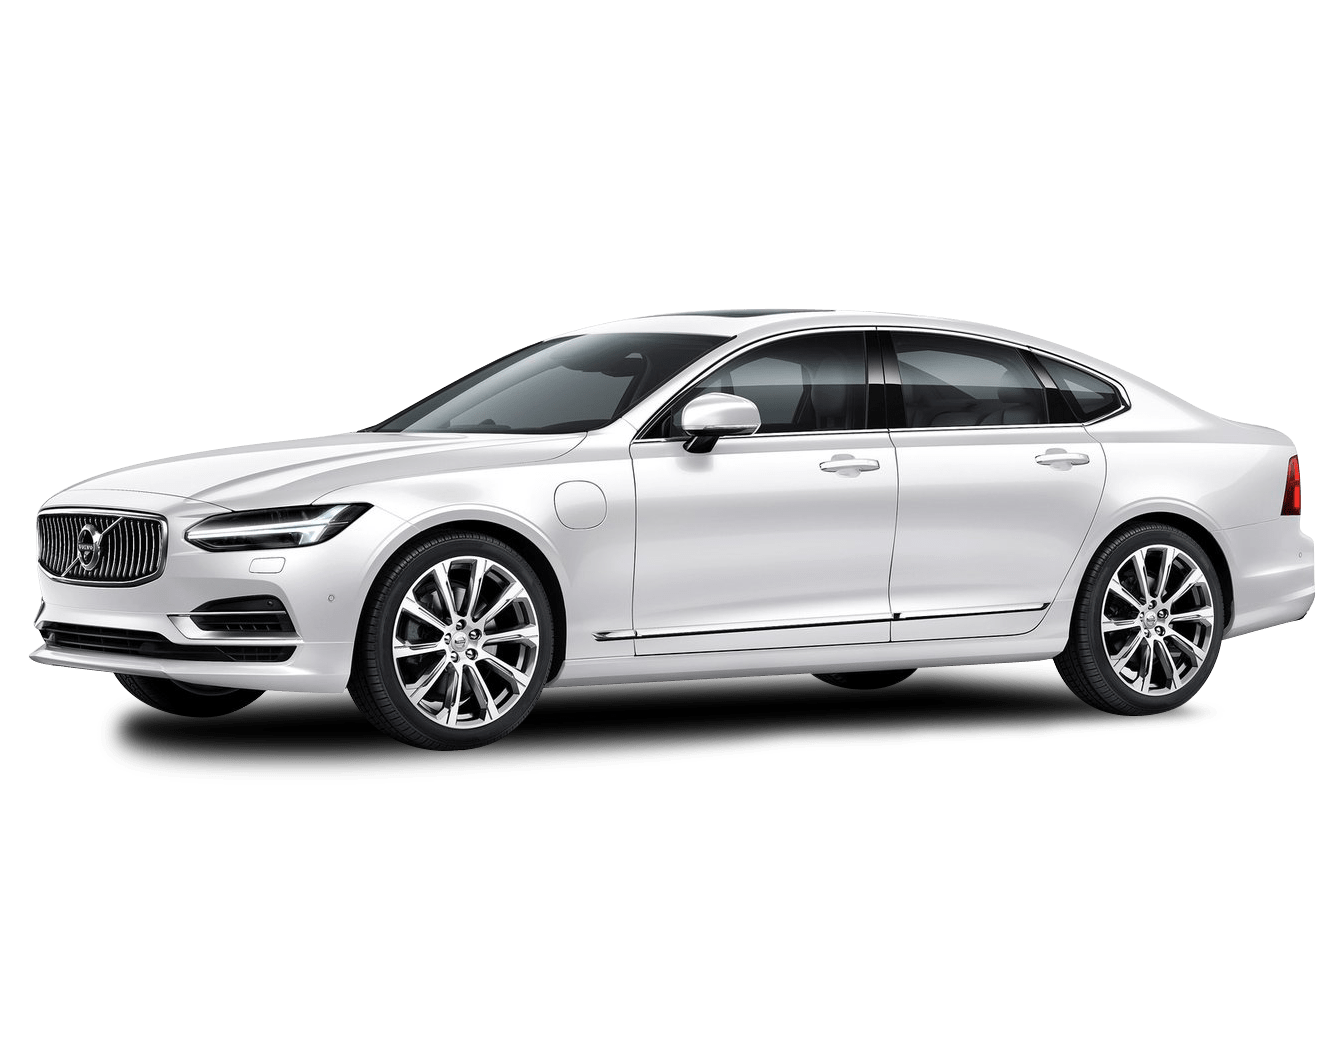 Volvo S90 Review Price For Sale Models Specs In Australia Carsguide